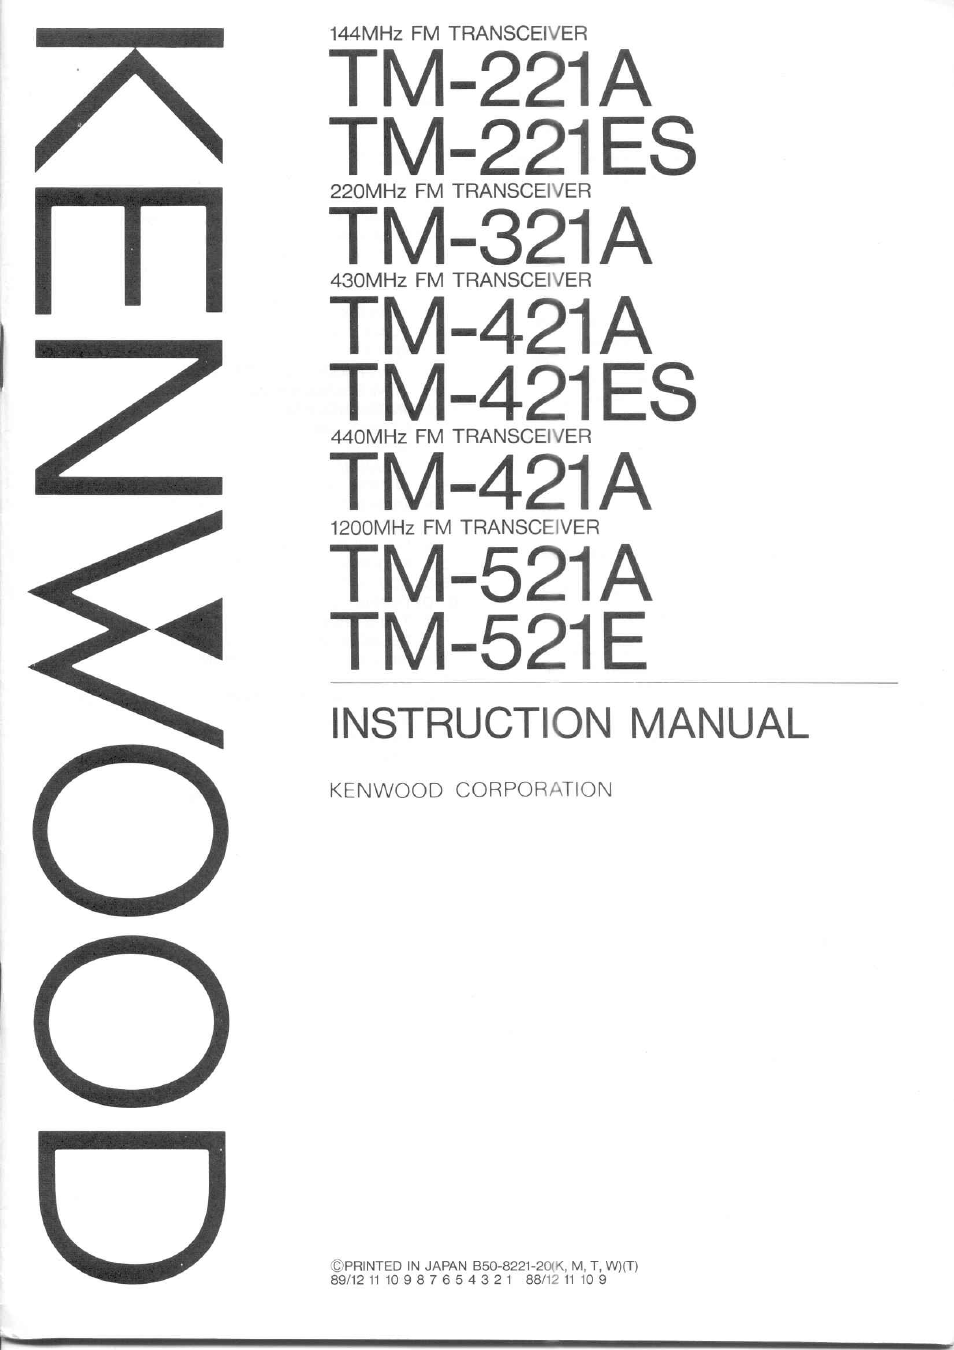 Kenwood TM-521E User Manual | 29 pages | Also for: TM-221ES, TM-421ES, TM-221A,  TM-521A, TM-321A